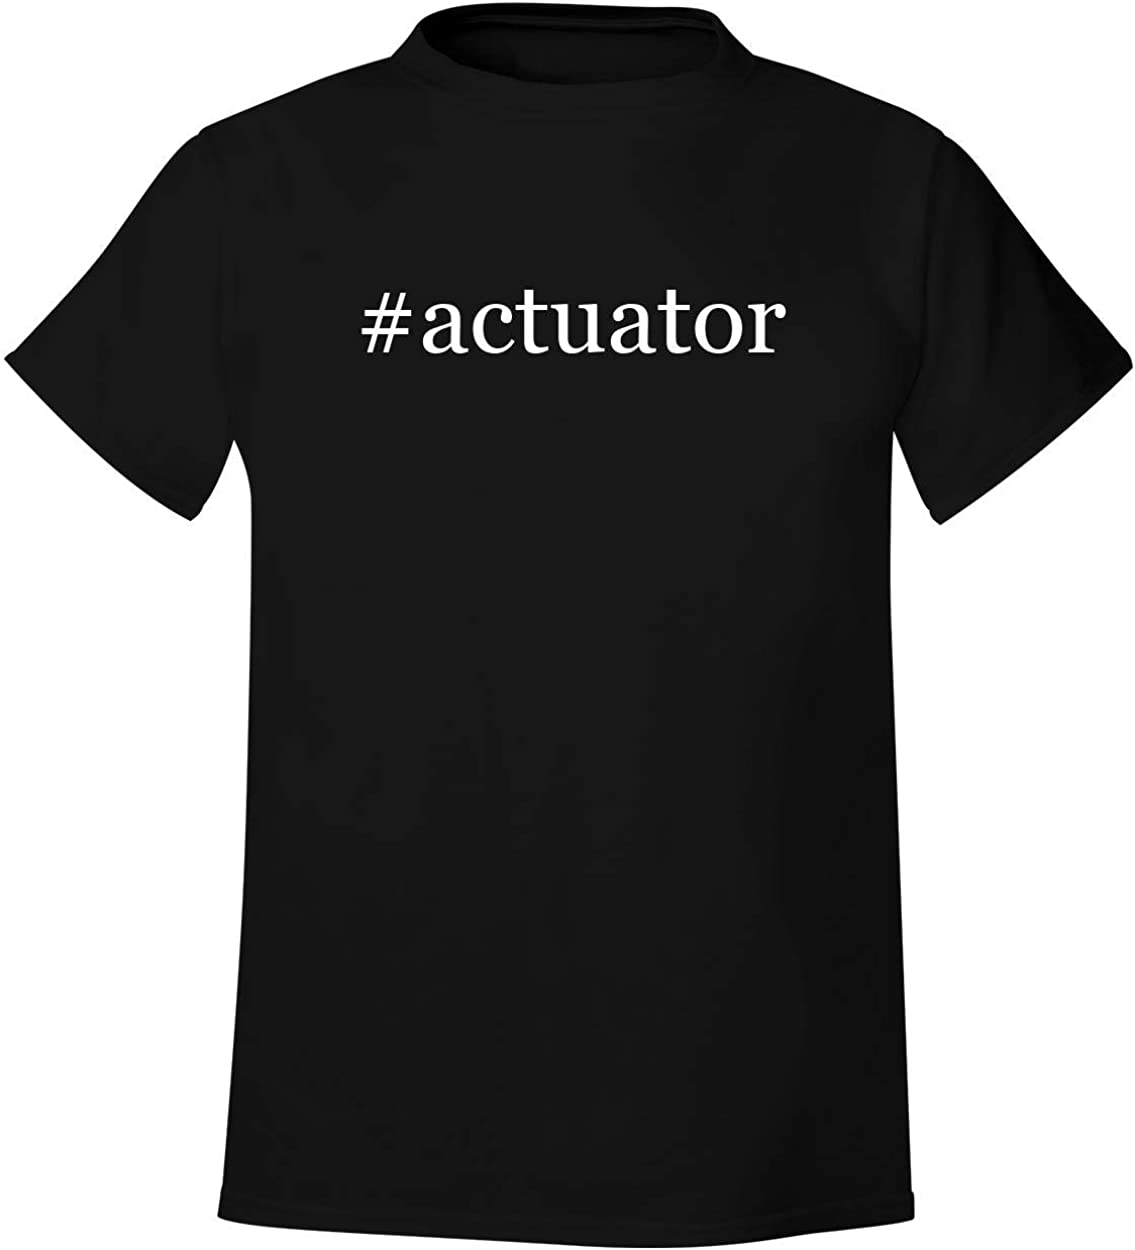 #actuator - Men's Hashtag Soft & Comfortable T-Shirt 51fHYsIY0OL